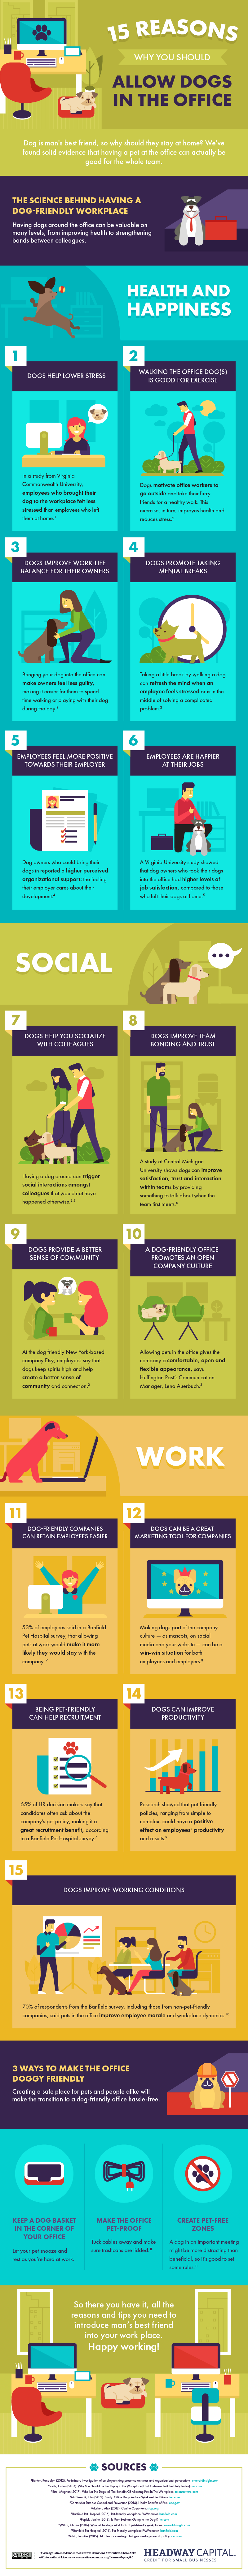 DESIGN -15 Reasons Why You Should Allow Dogs in the Office